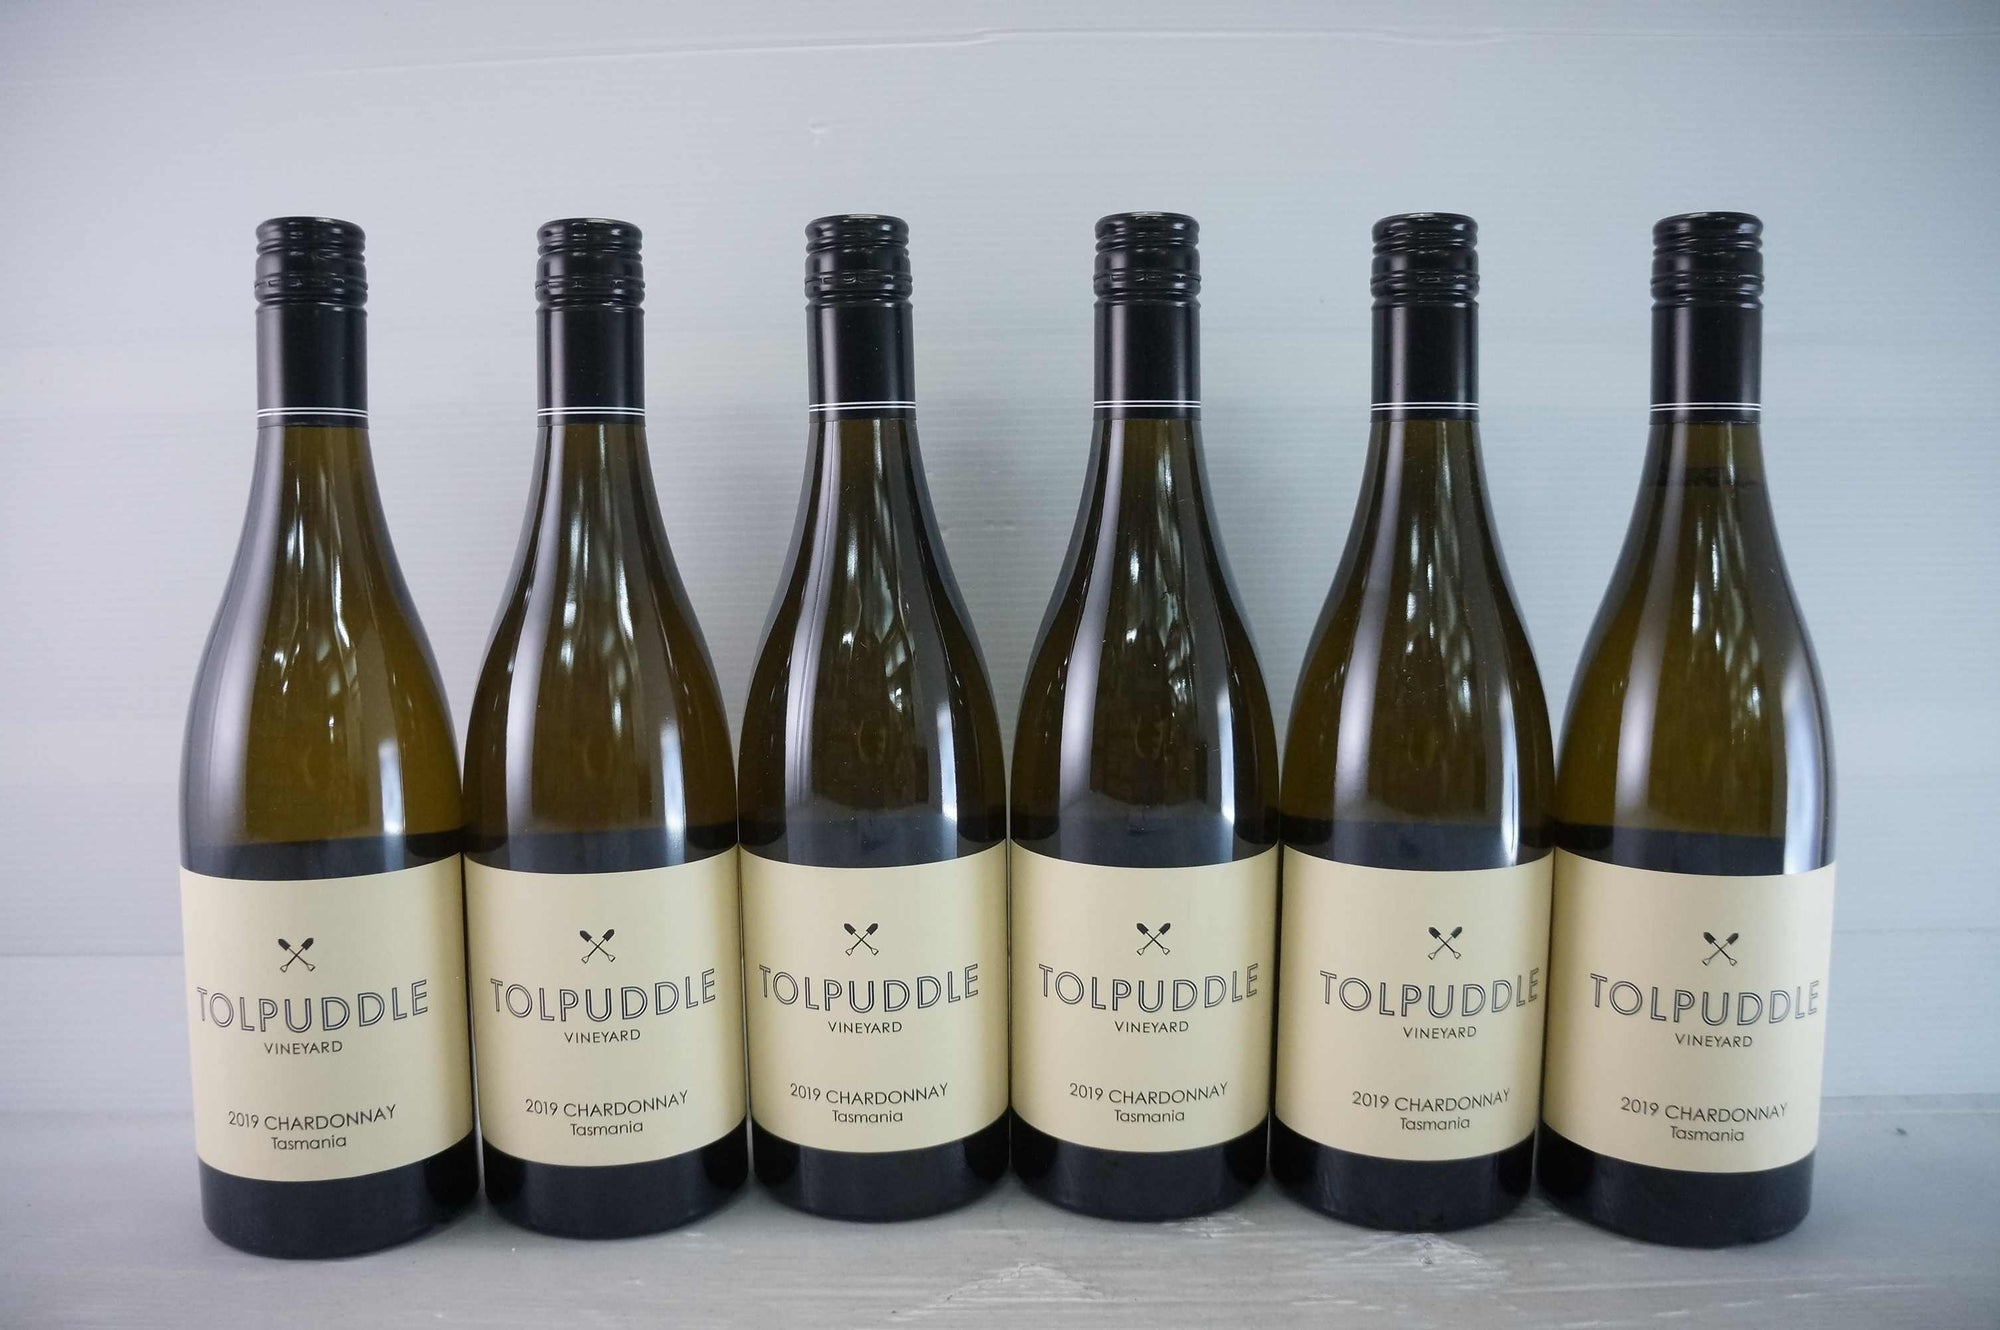 Tolpuddle Vineyard Chardonnay 2019